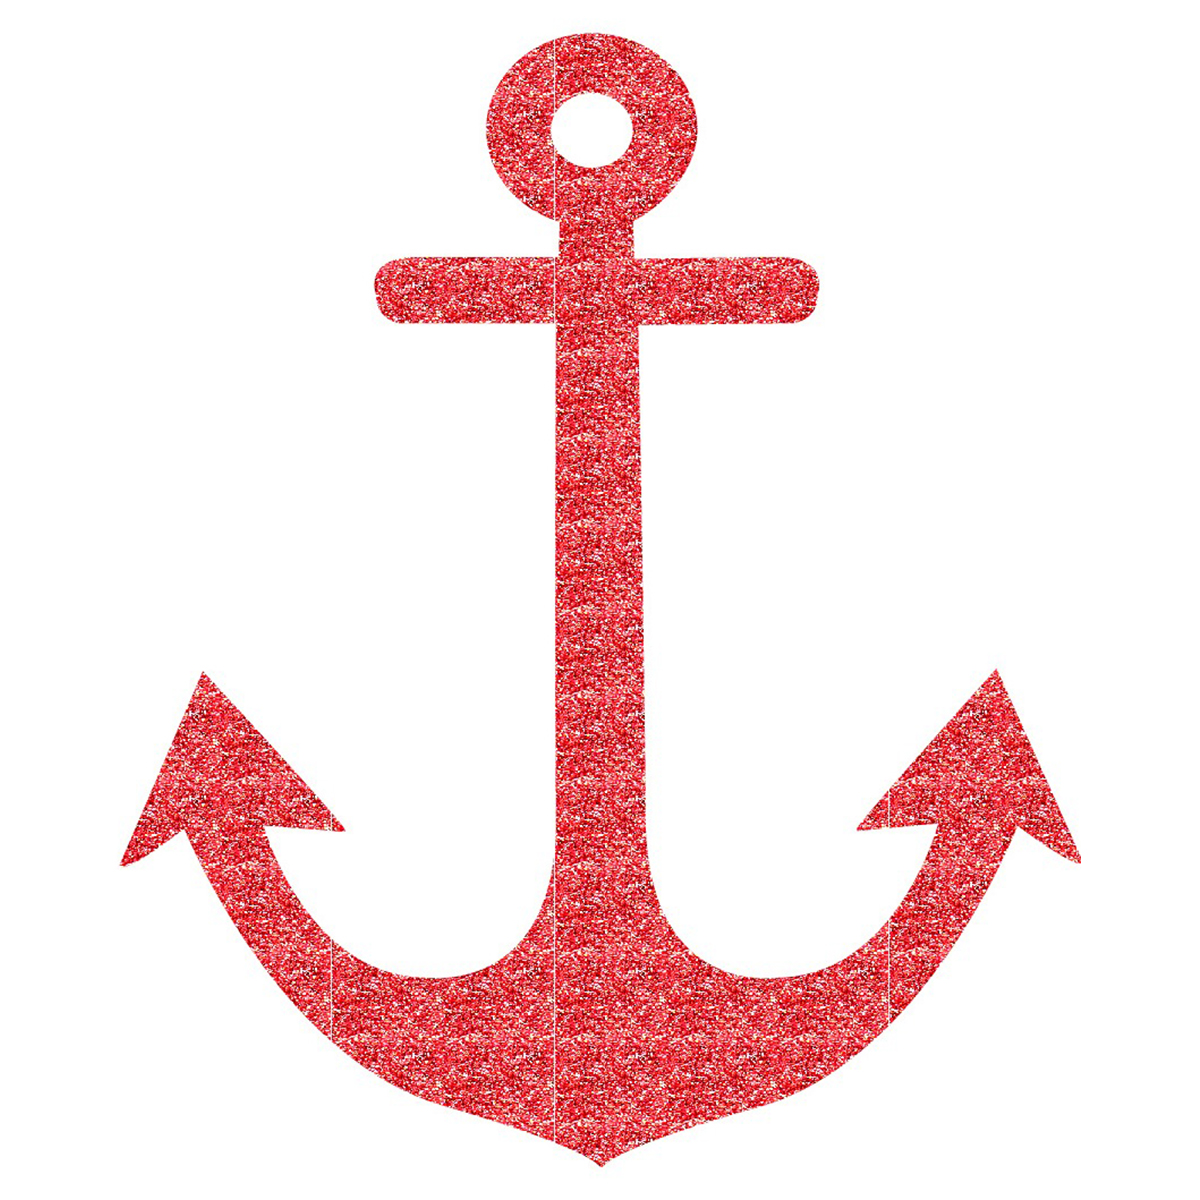 anchor clipart no background - photo #20